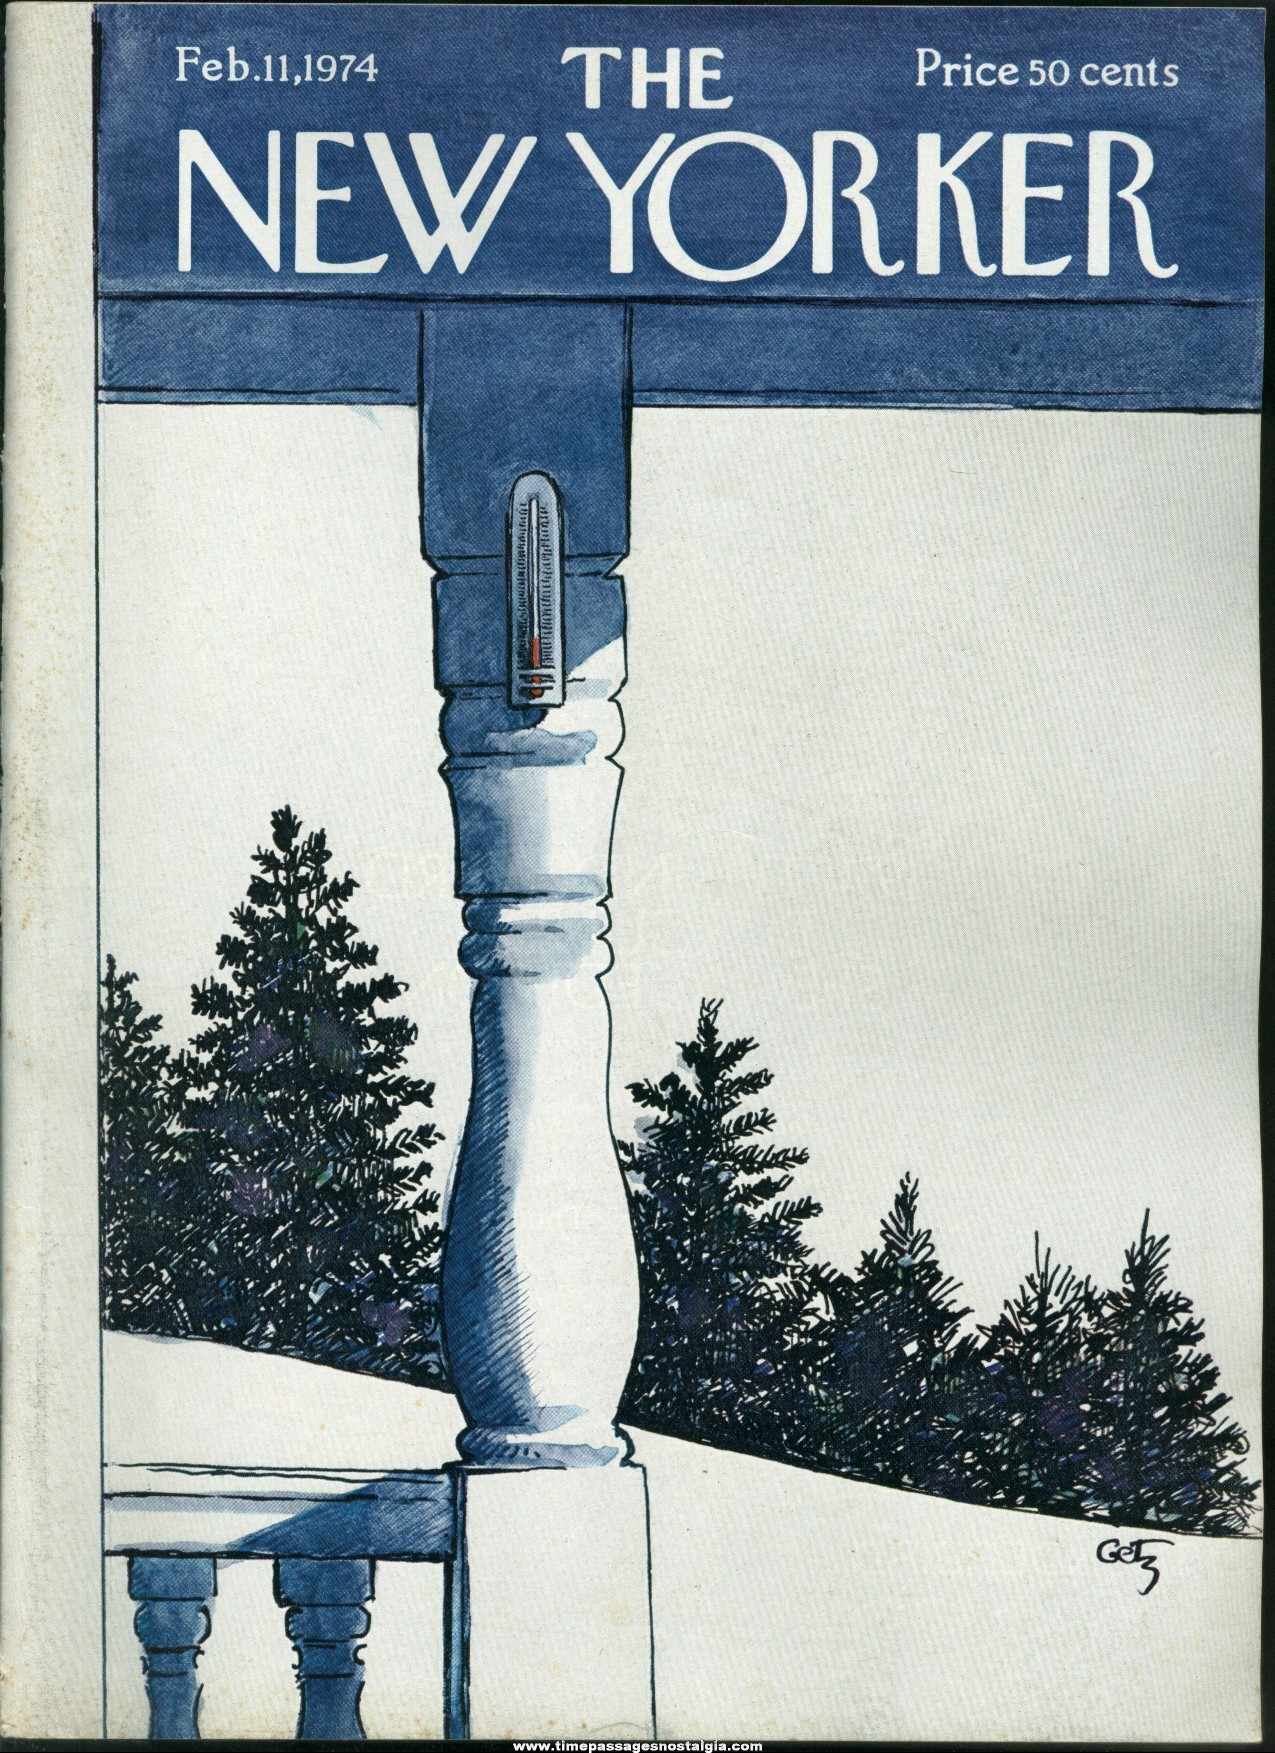 New Yorker Magazine - February 11, 1974 - Cover by Arthur Getz